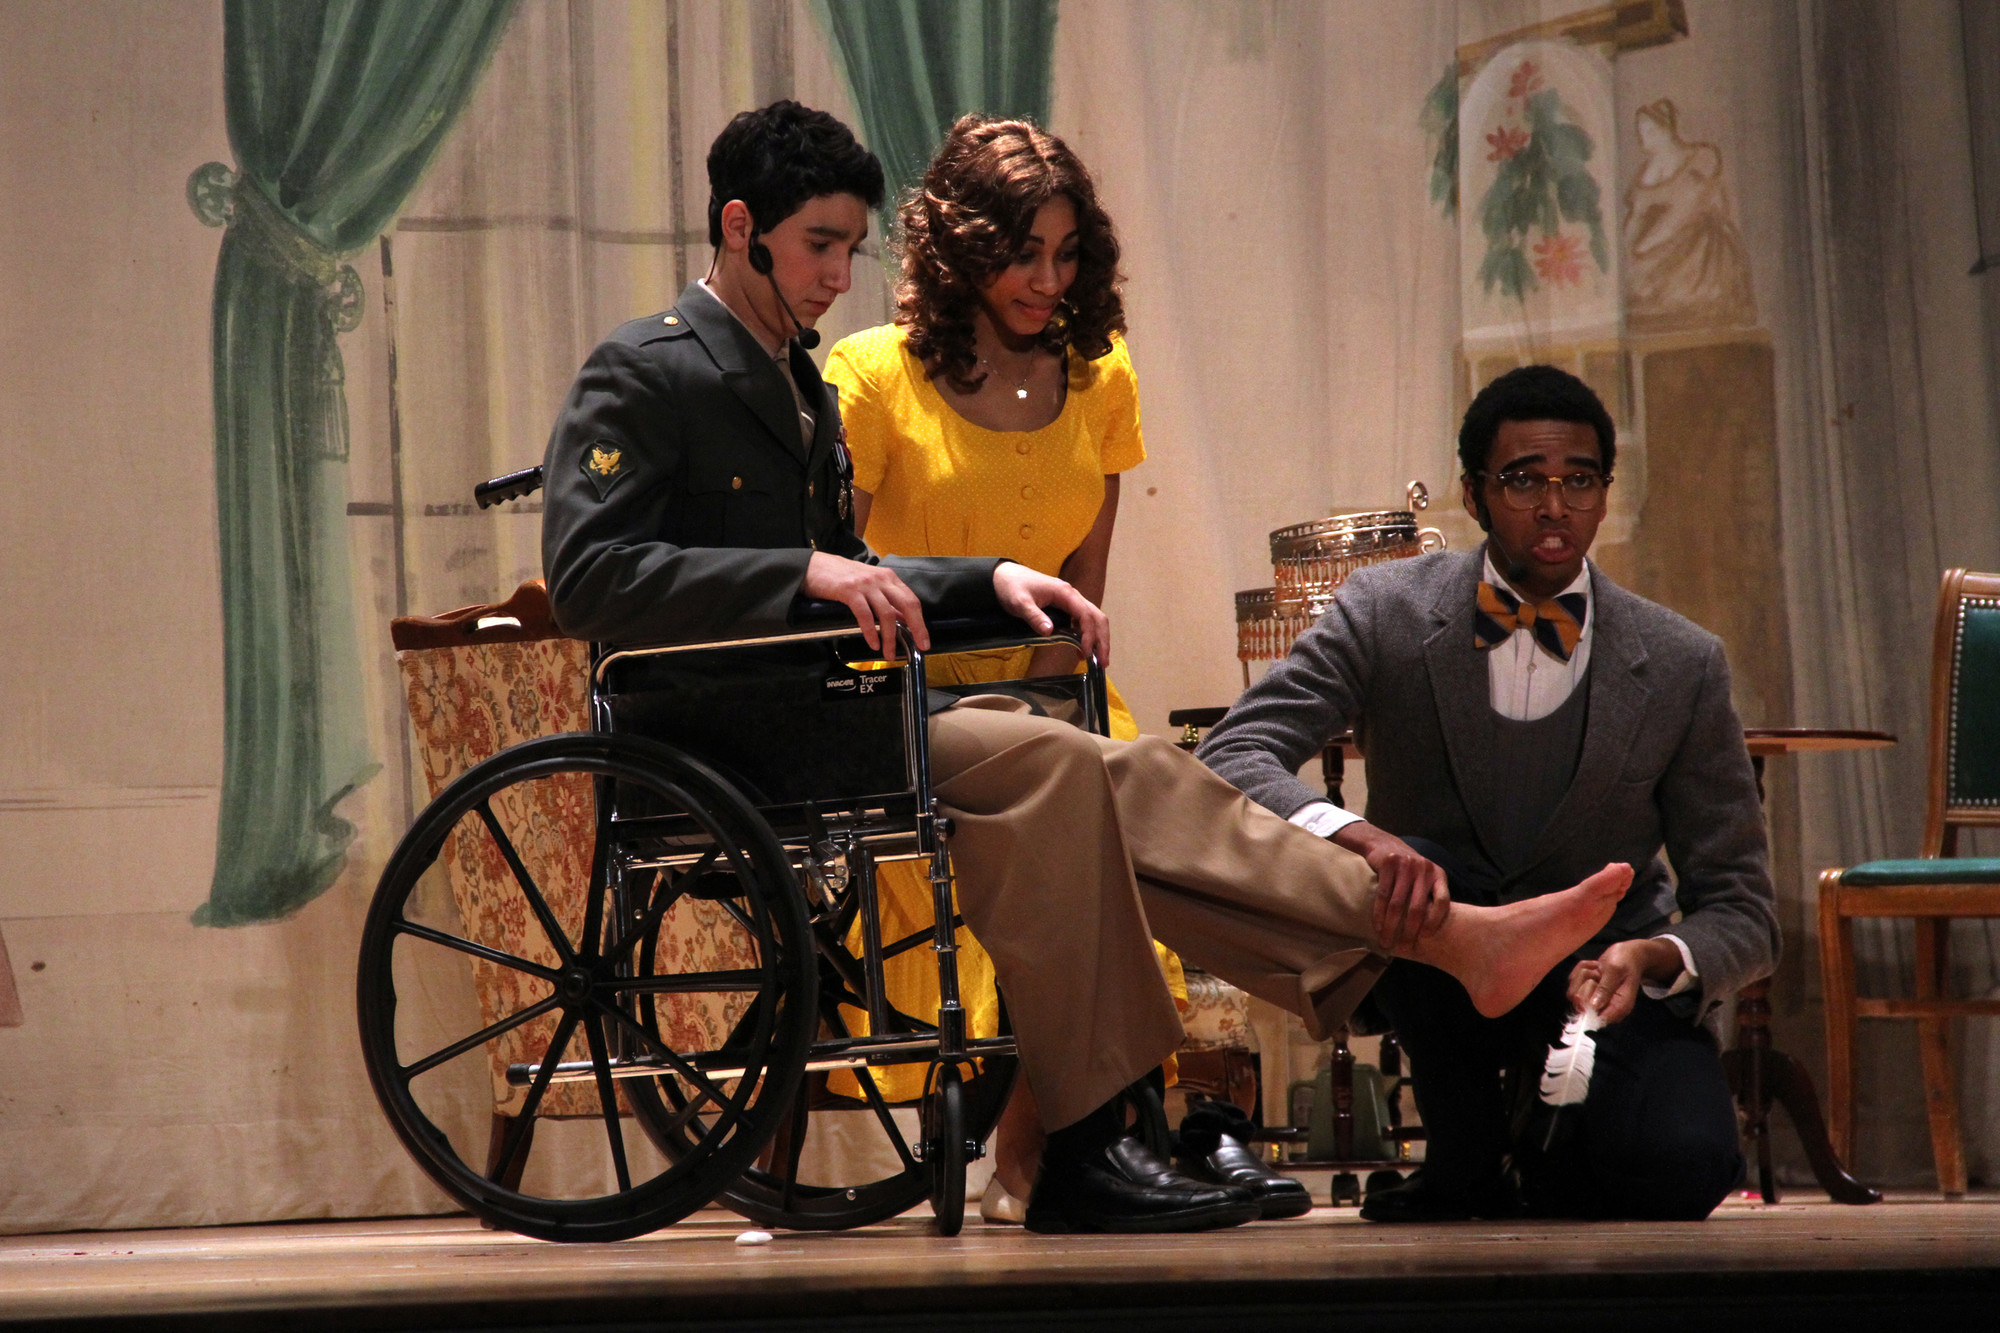 In one of the play's scenes, Brandon Funderburke as Lawrence Jameson pretended to be doctor and checked the foot of Freddy Benson, played by Joshua Torres. Amber Garrick as Christina Colgate waited for the diagnosis.